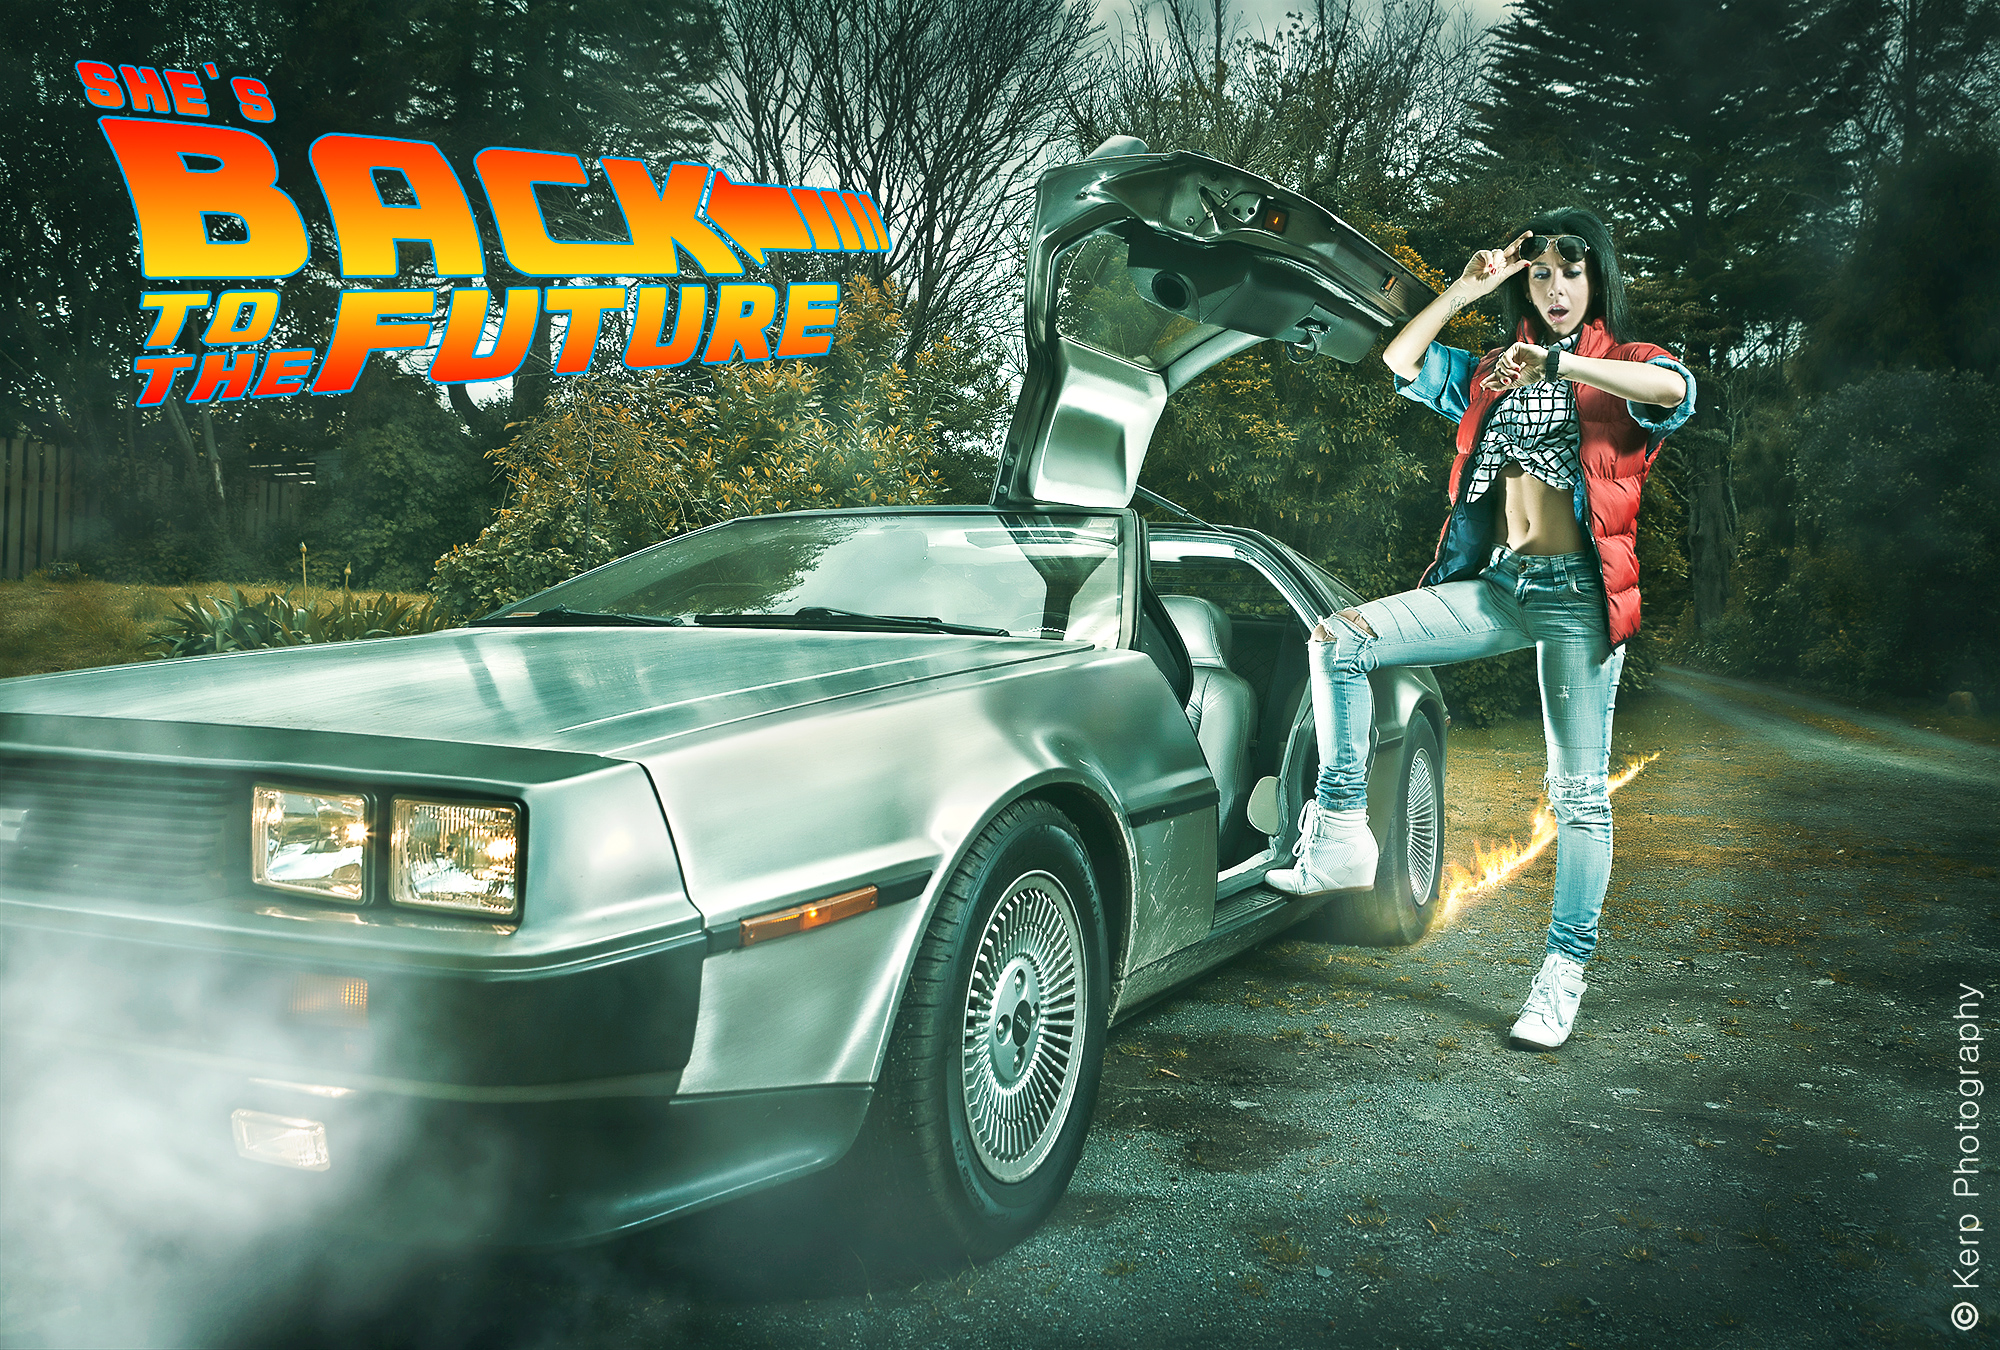 She's Back to the Future